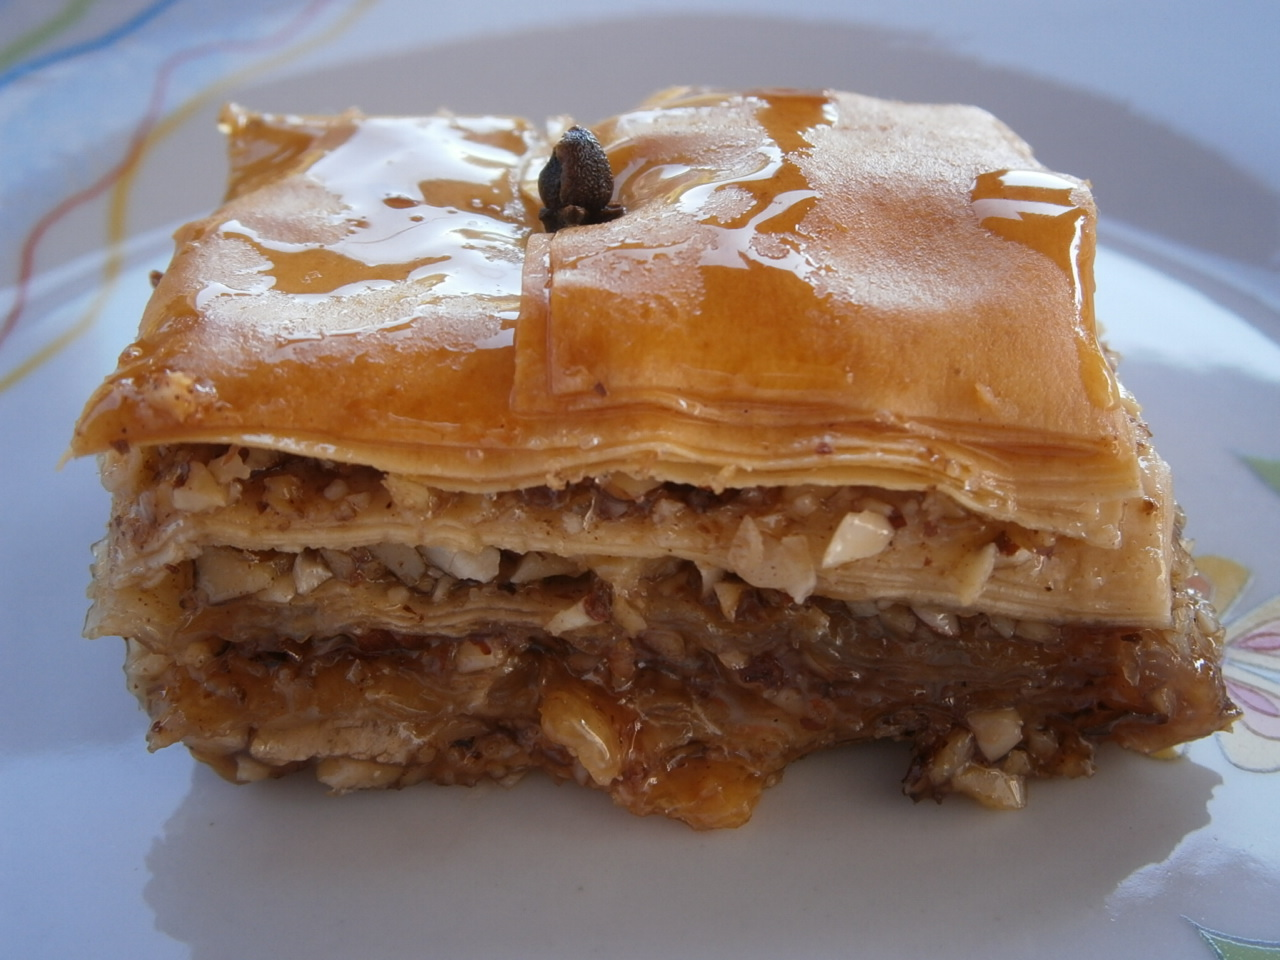 Travel Thru Greece with Mara: Baklava Recipe